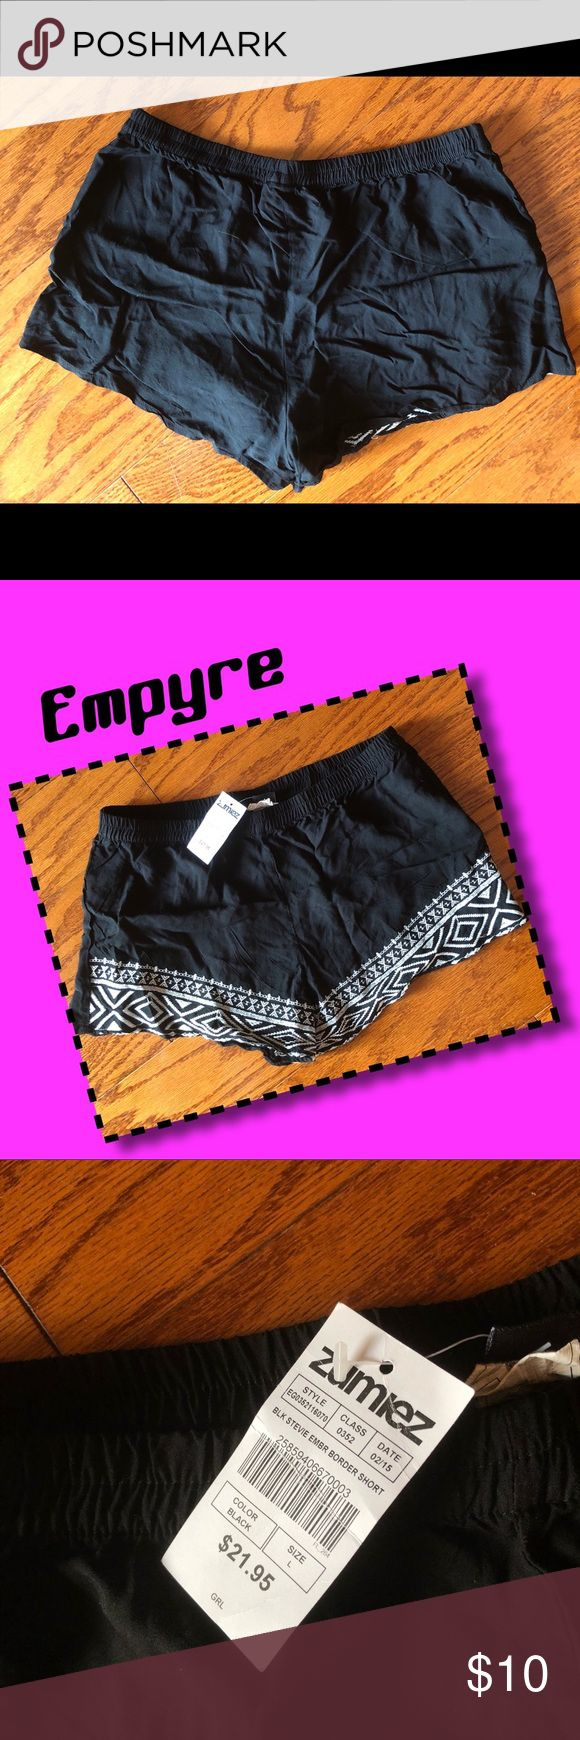 """Zumiez Aztec shorts Loose draped fit. Elastic waistband. Lightweight and breathable construction for a comfortable wear. 100% rayon. 2"""" inseam, 10"""" outseam, 11"""" front rise. 🚭 home. Empyre by Zumiez Shorts"""